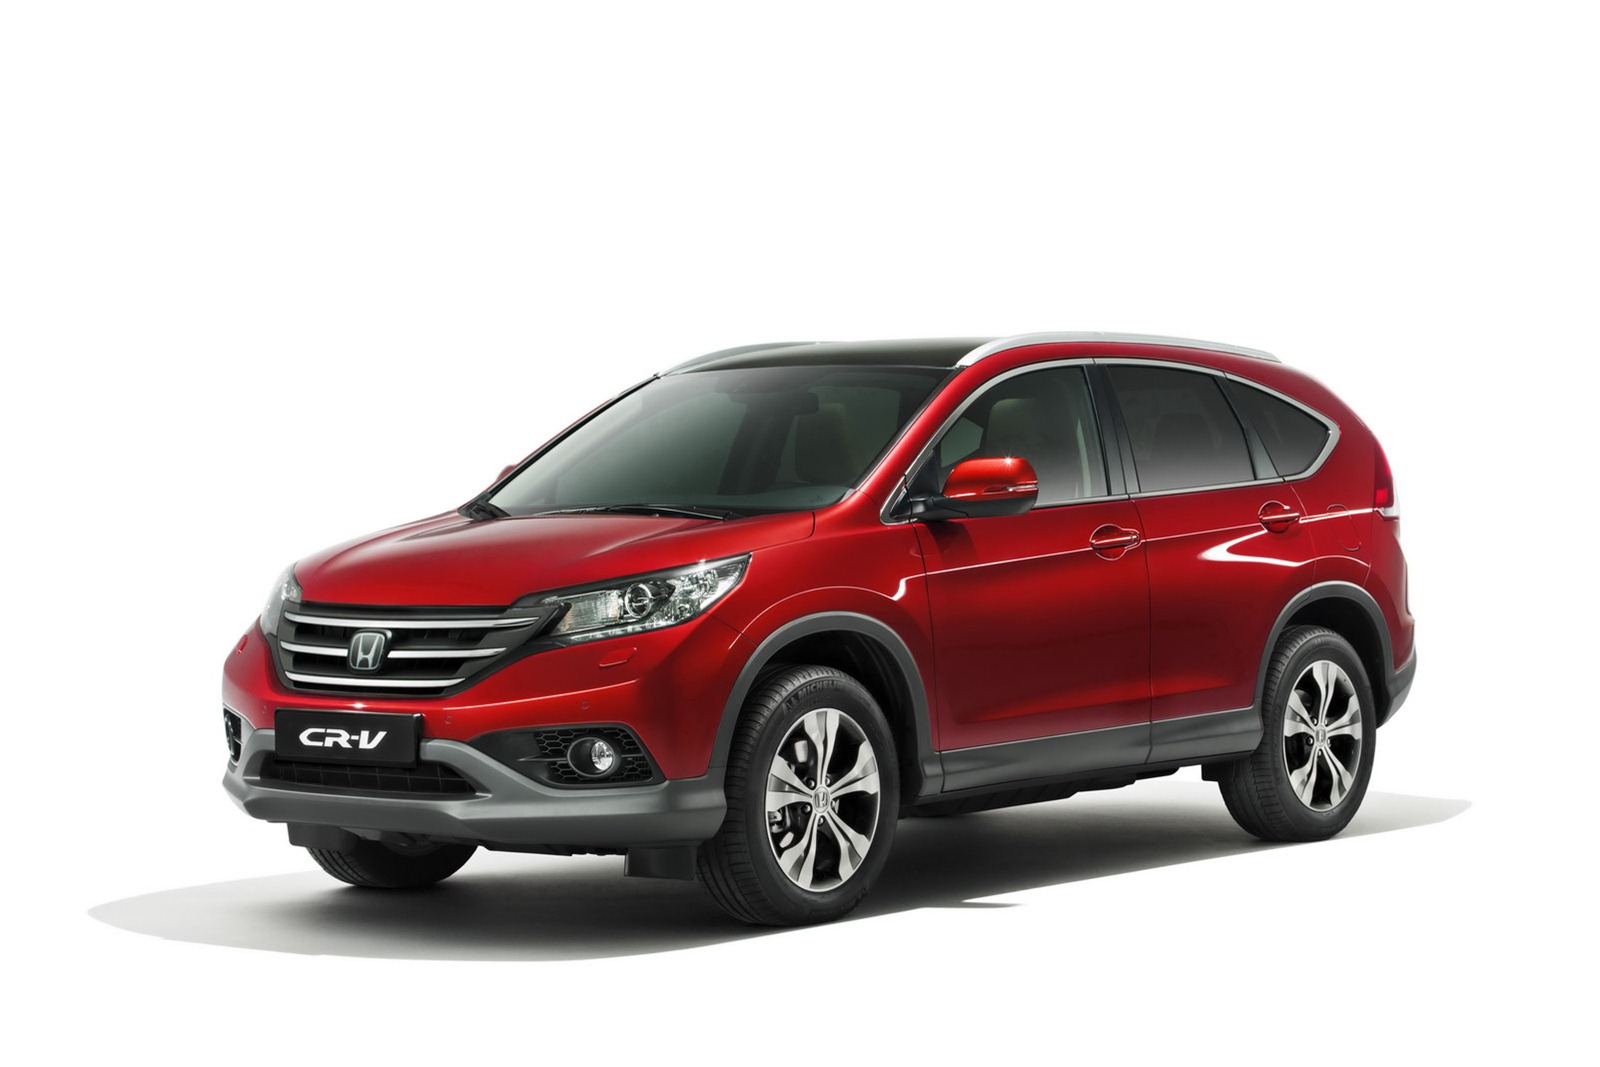 2013 Honda CR V 2013 Honda CR V Vehicle with Upgraded Tune up Features